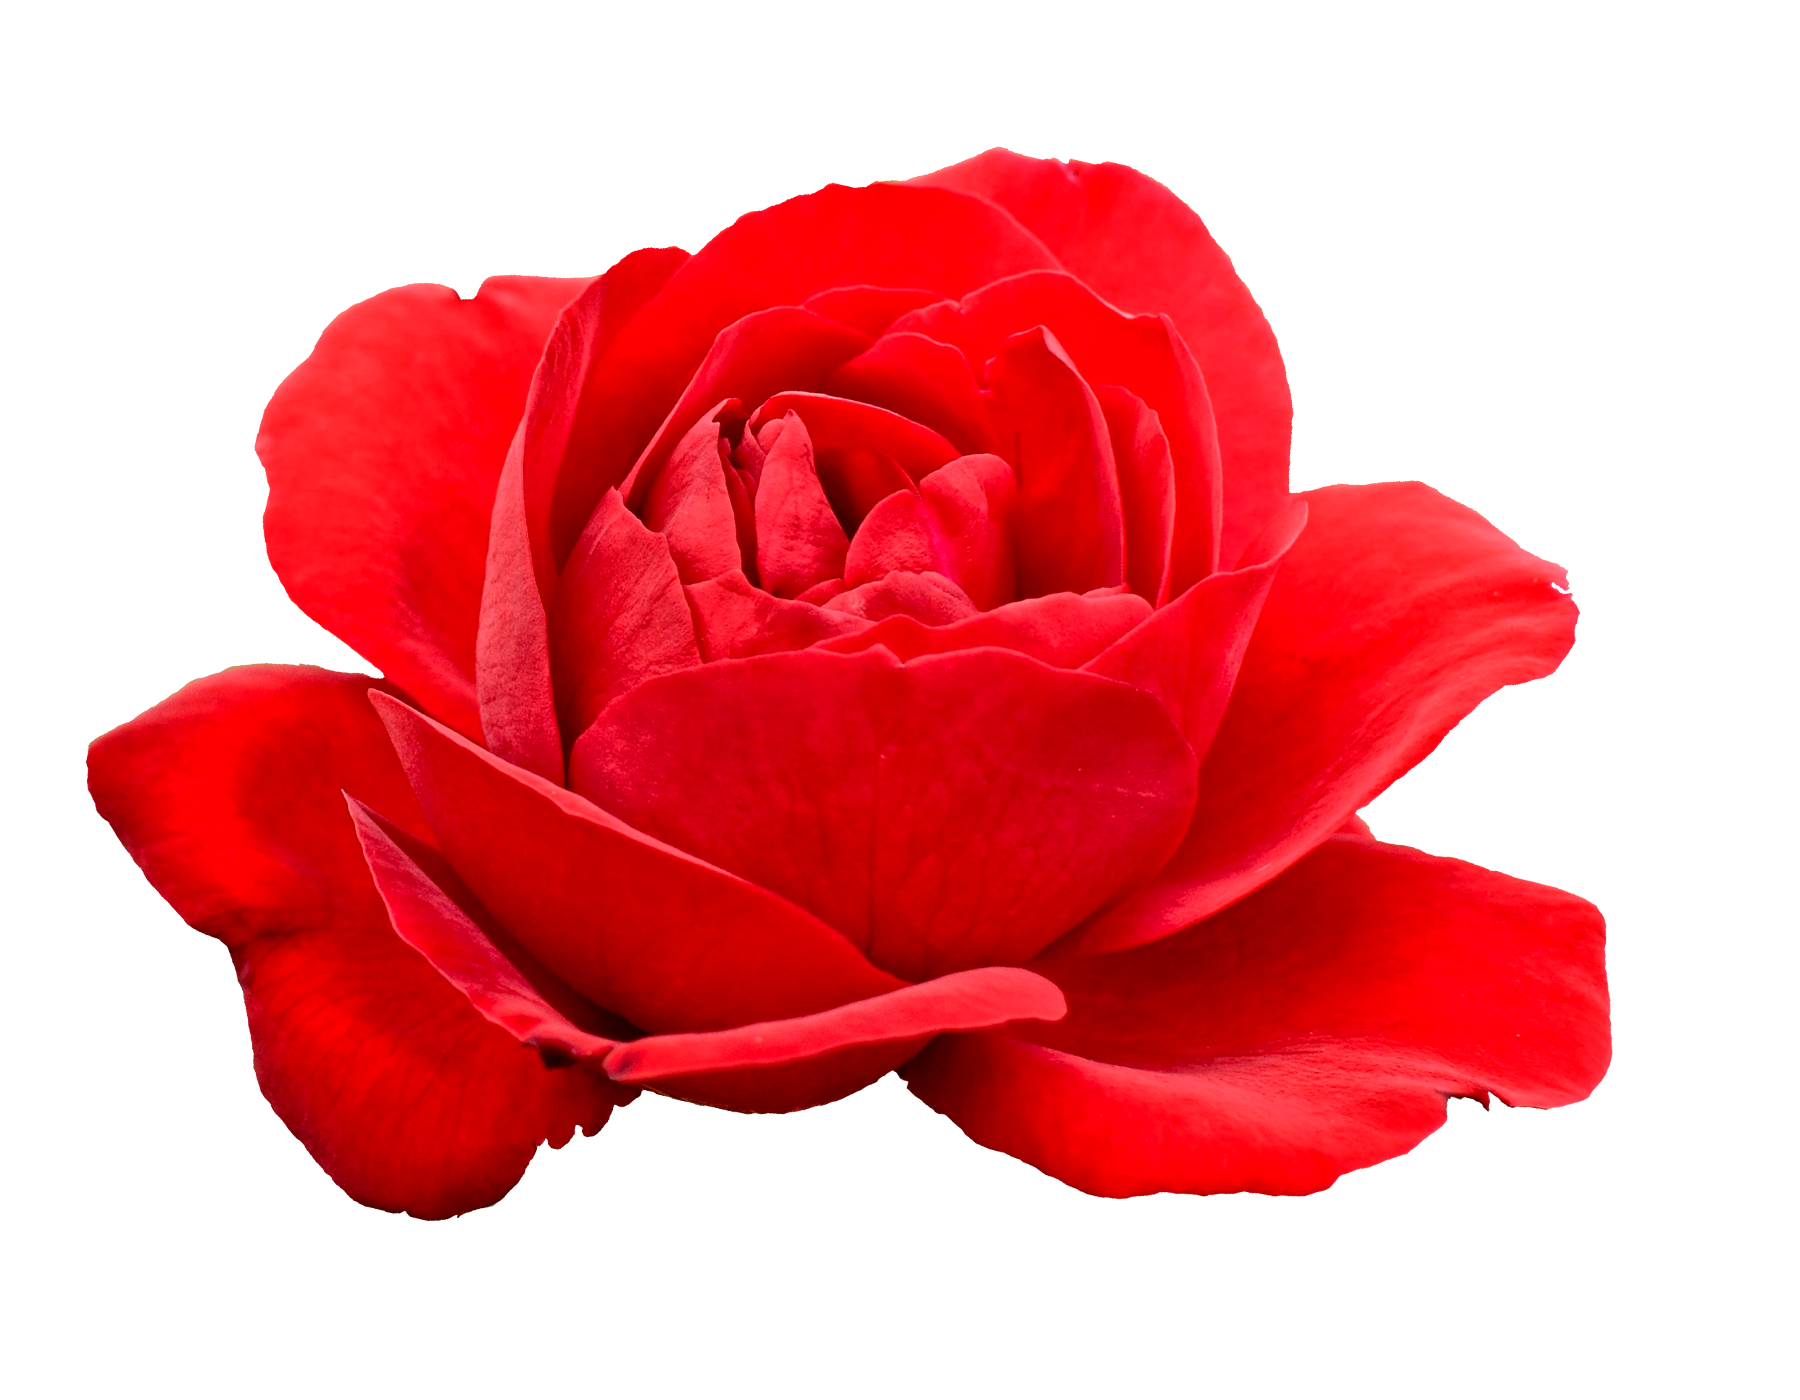 5 Flower Red Rose PNG Image Transparent | OnlyGFX.com for Vector Rose Flower Png  157uhy